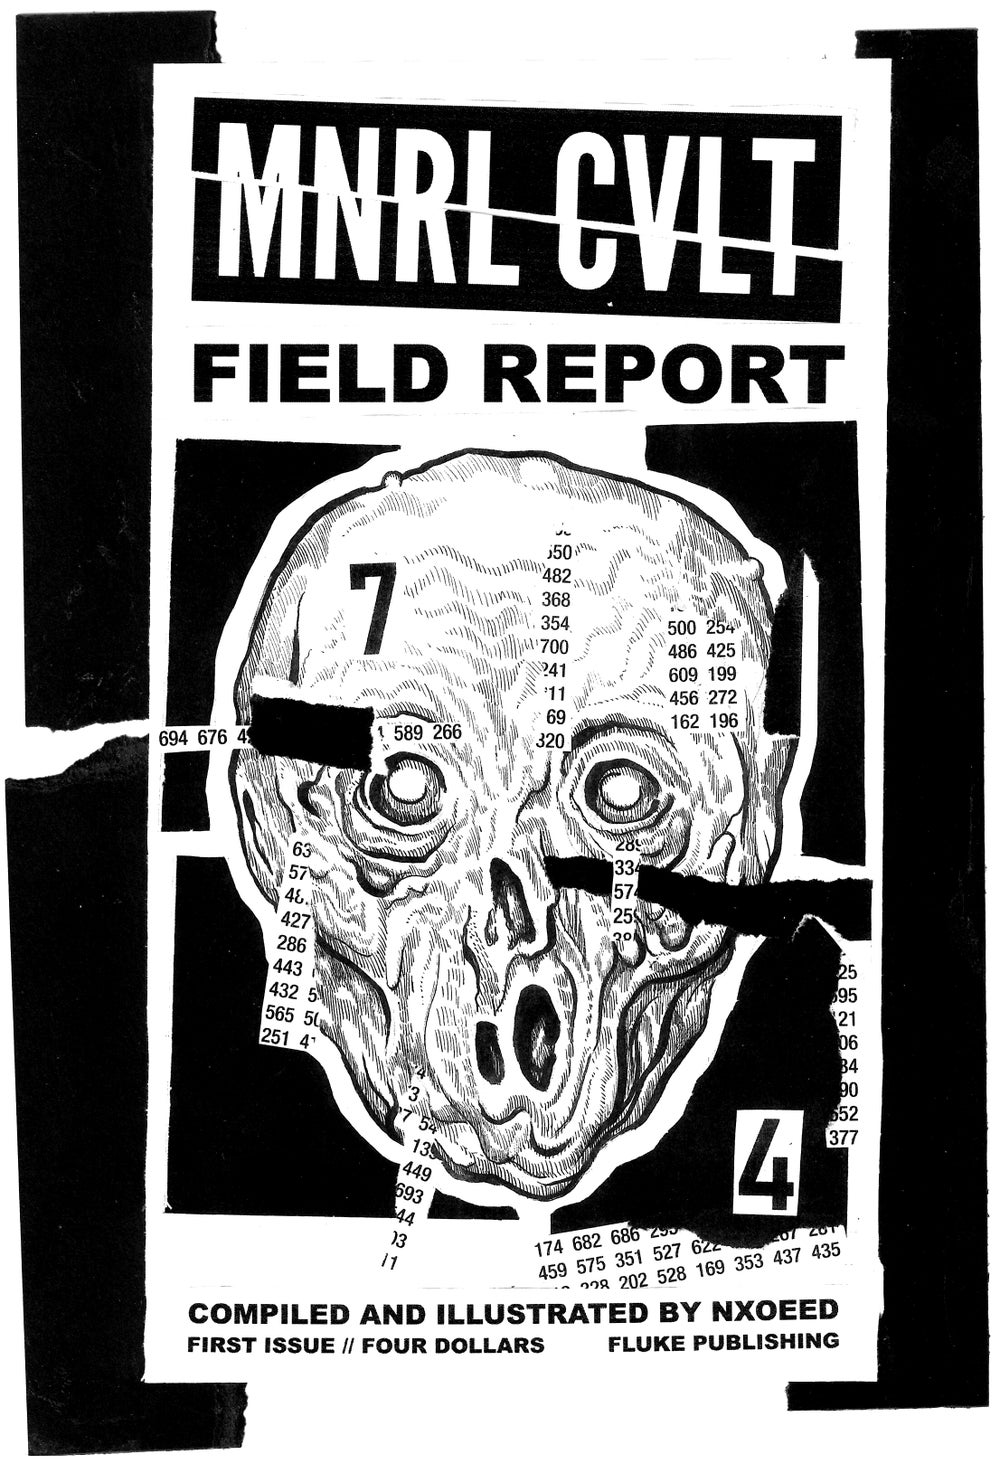 Image of MNRL CVLT FIELD REPORT | Winter 2021 (Fluke Publishing)